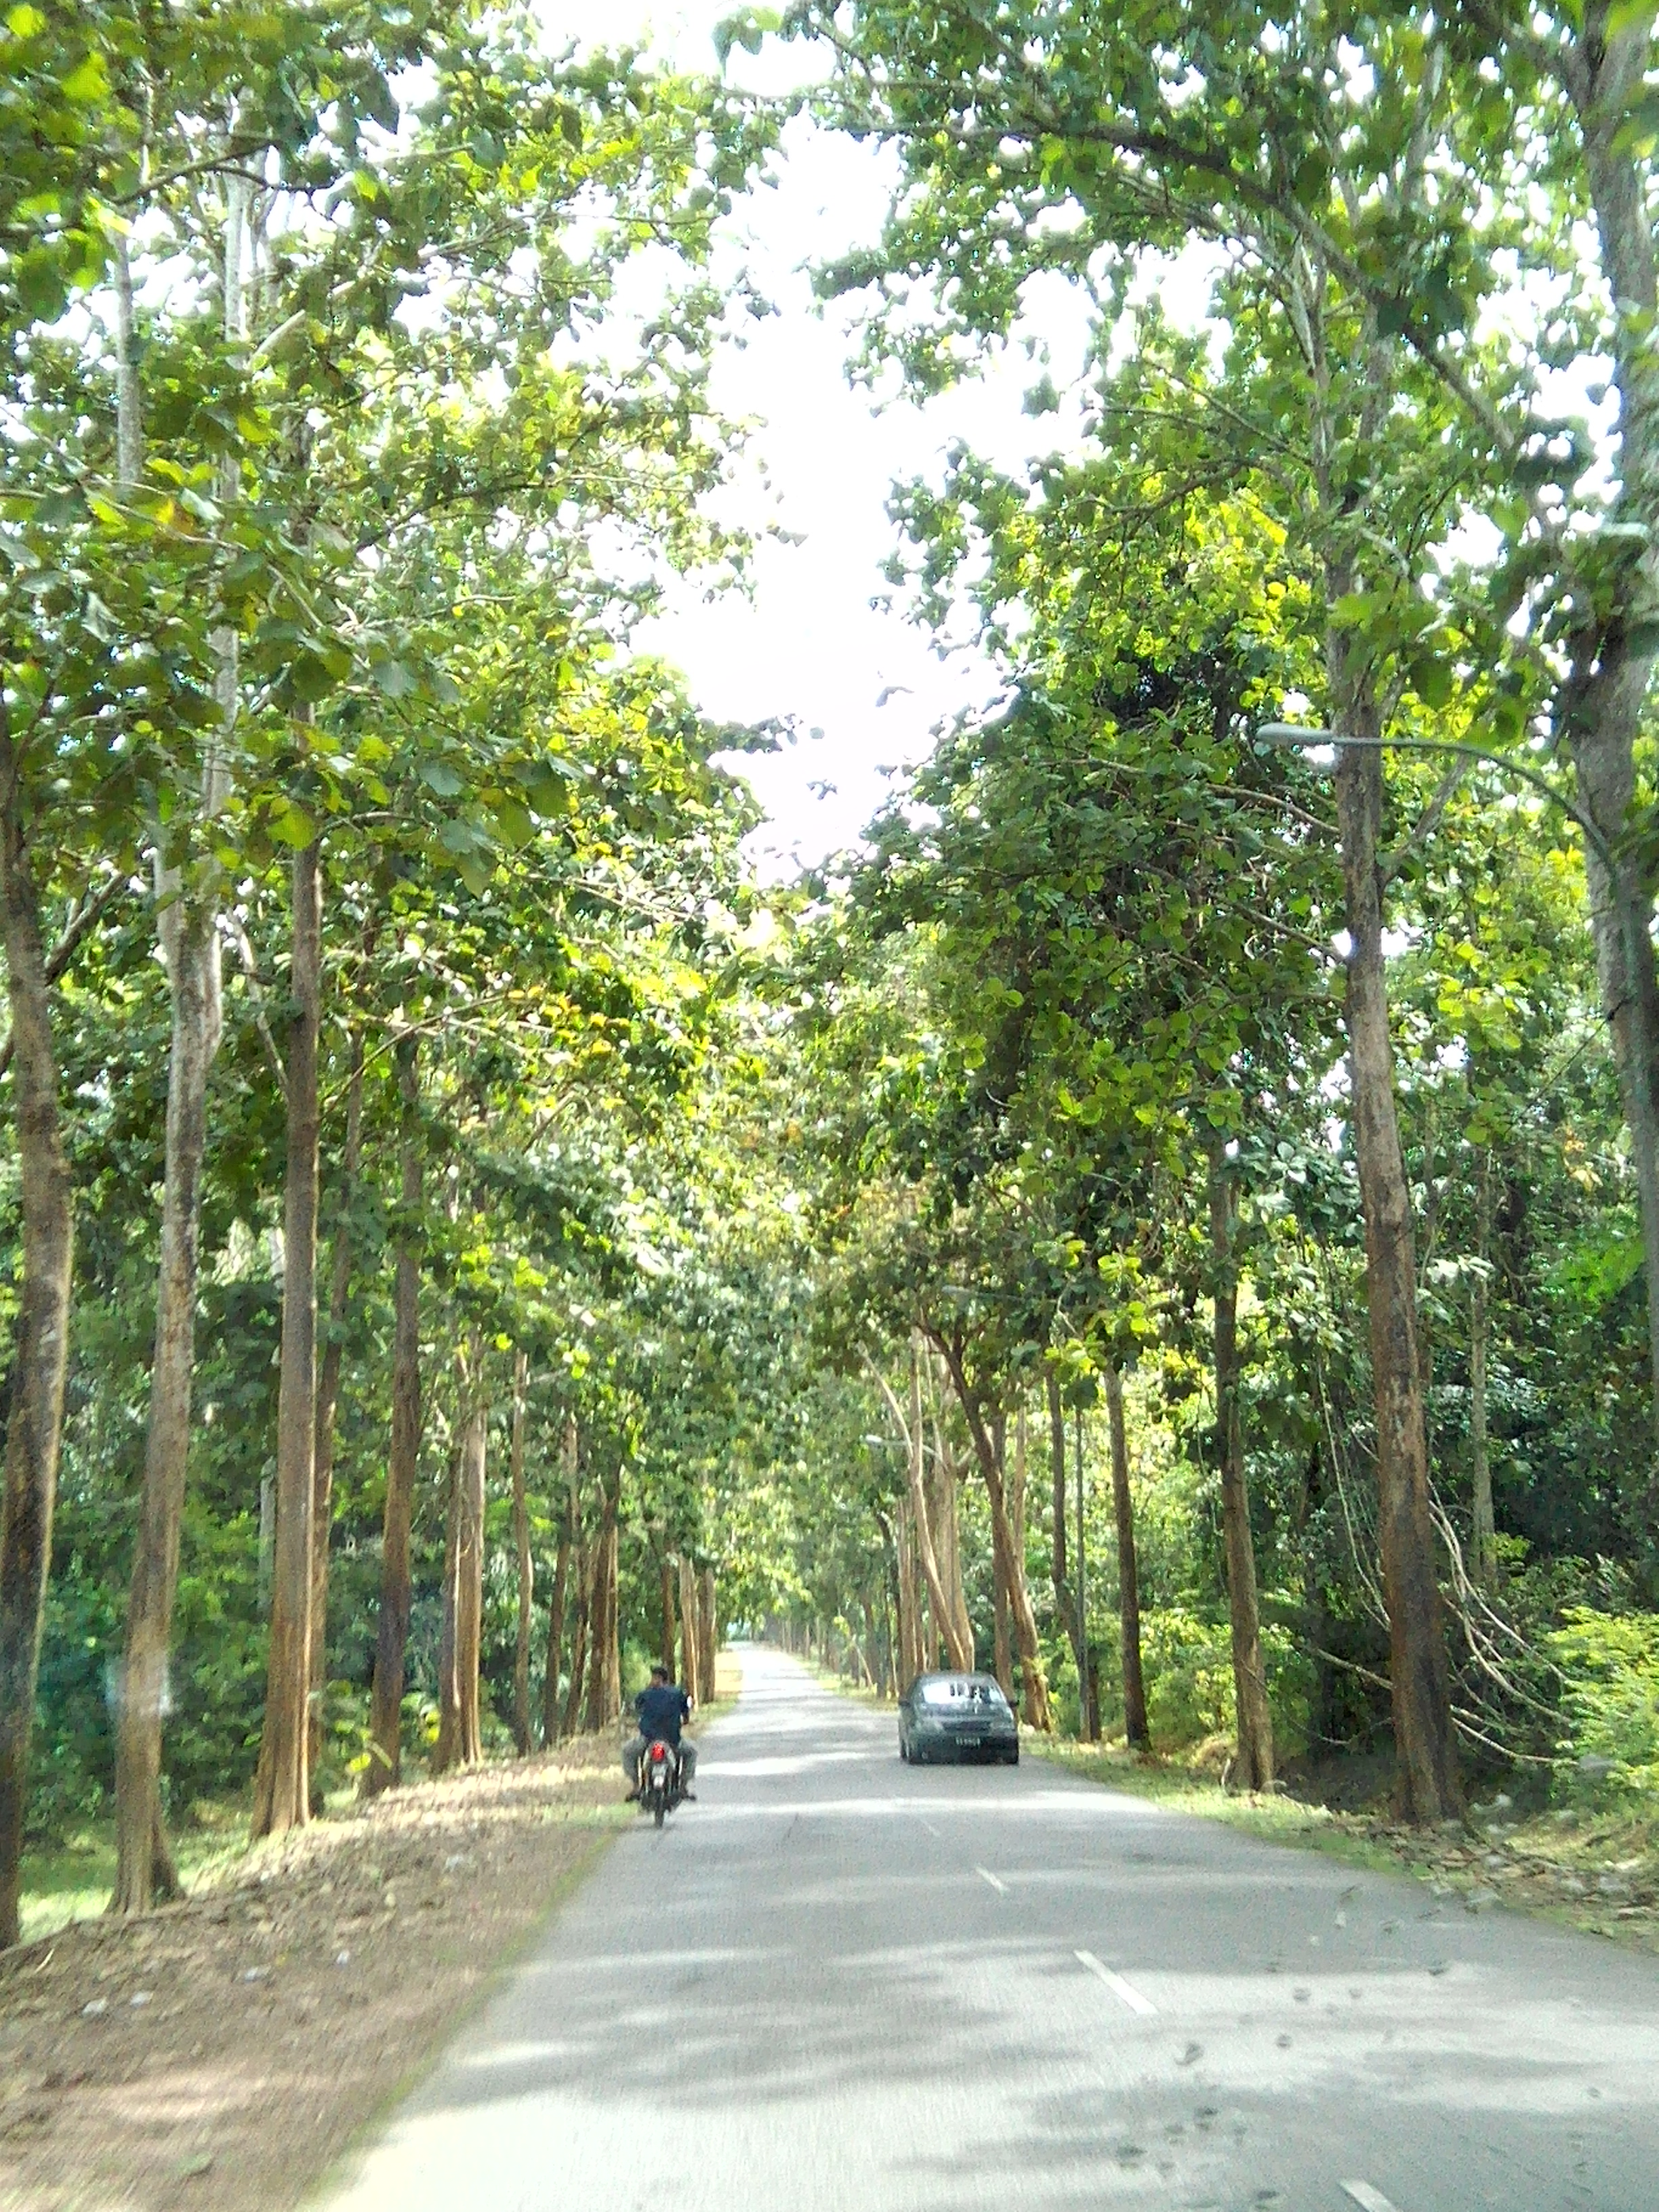 On our way to the forest.  The green trees are so refreshing.